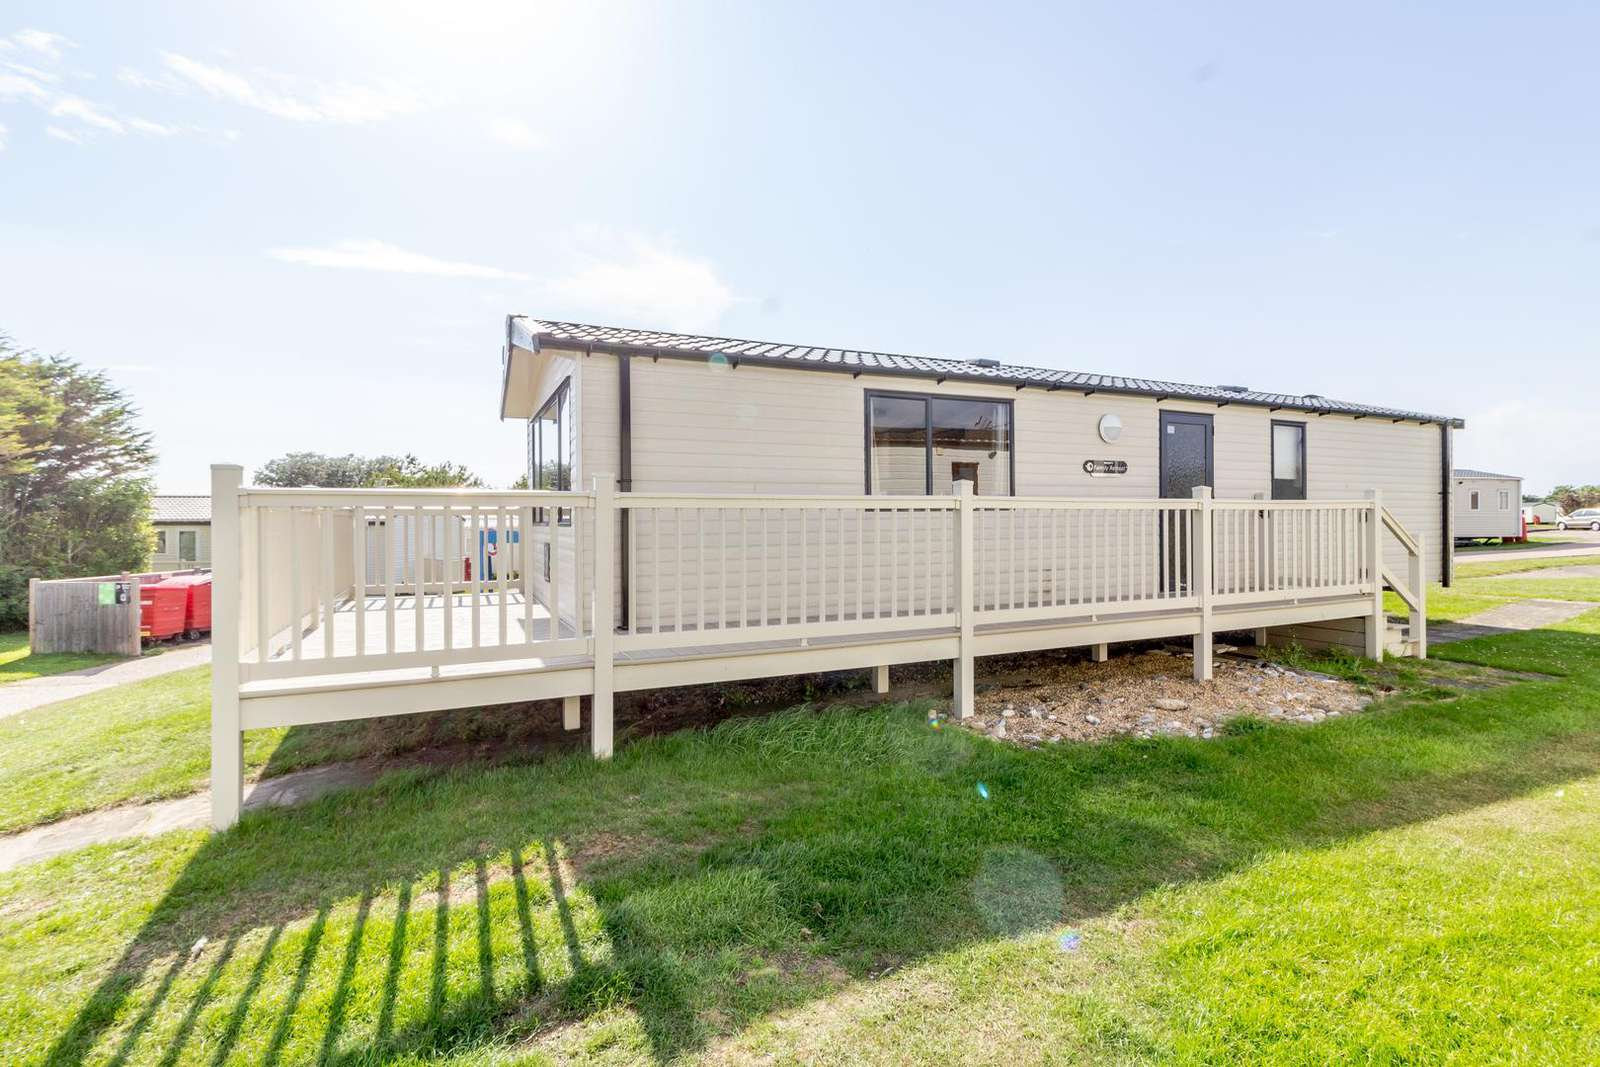 90003DW – Drifter Way, 3 bed, 8 berth caravan with decking. Diamond rated. - property